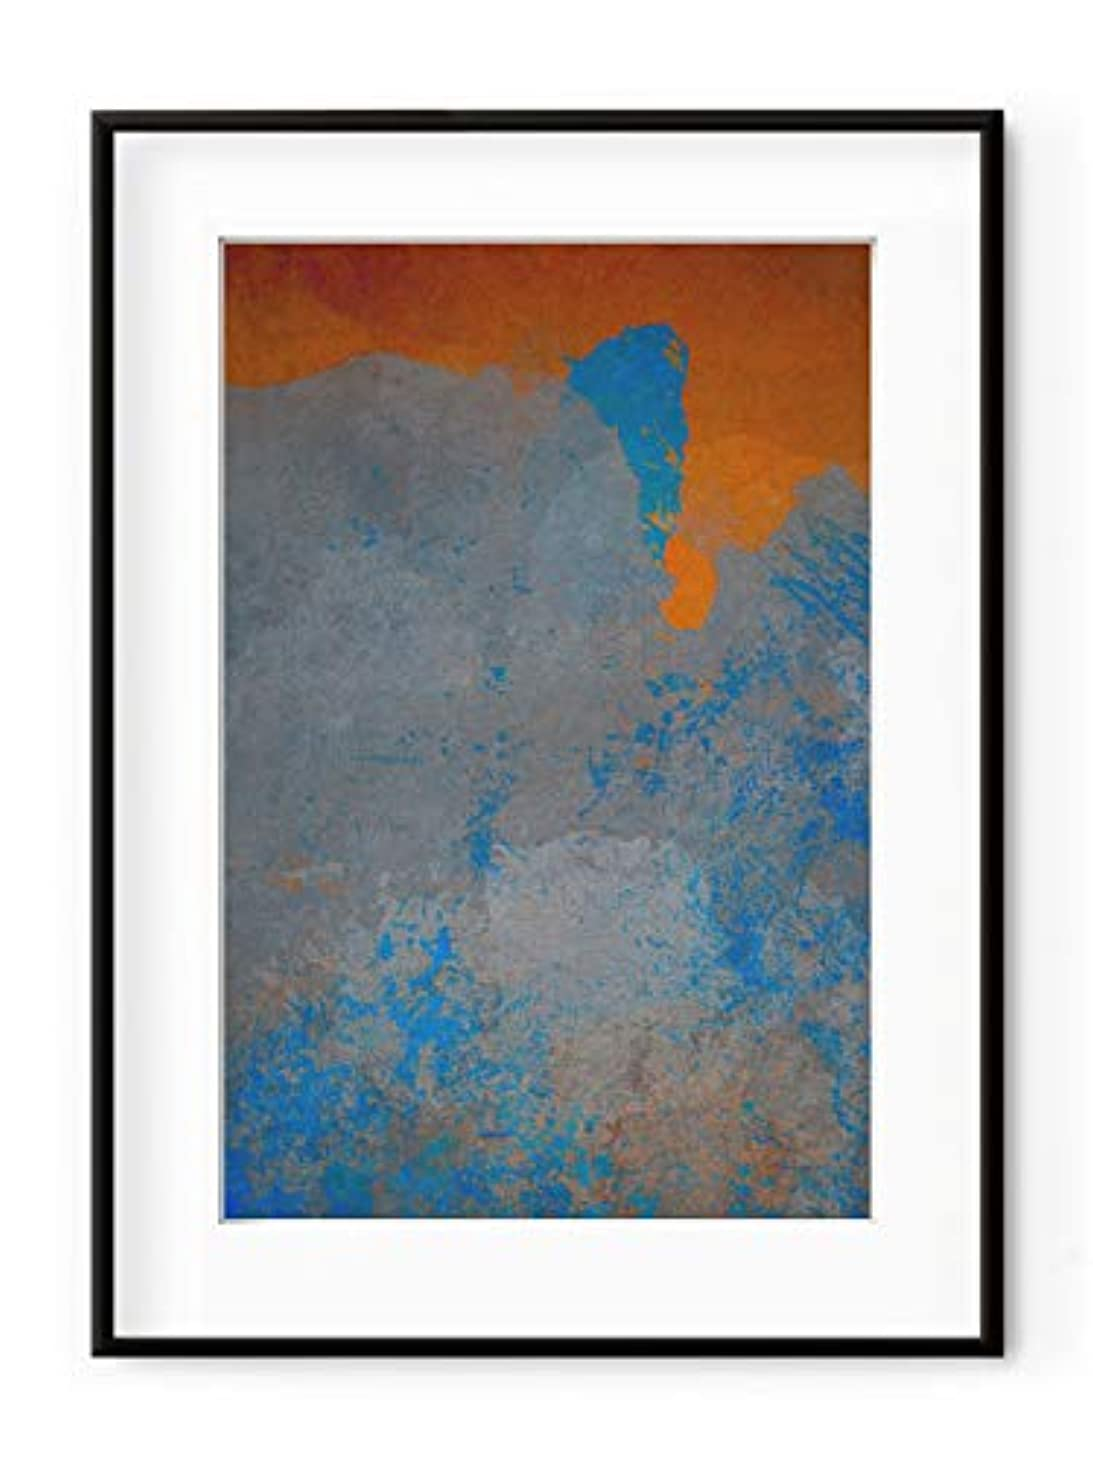 Orange and Blue Abstract, White Lacquer Wood Frame, with Mount, Multicolored, 40x50